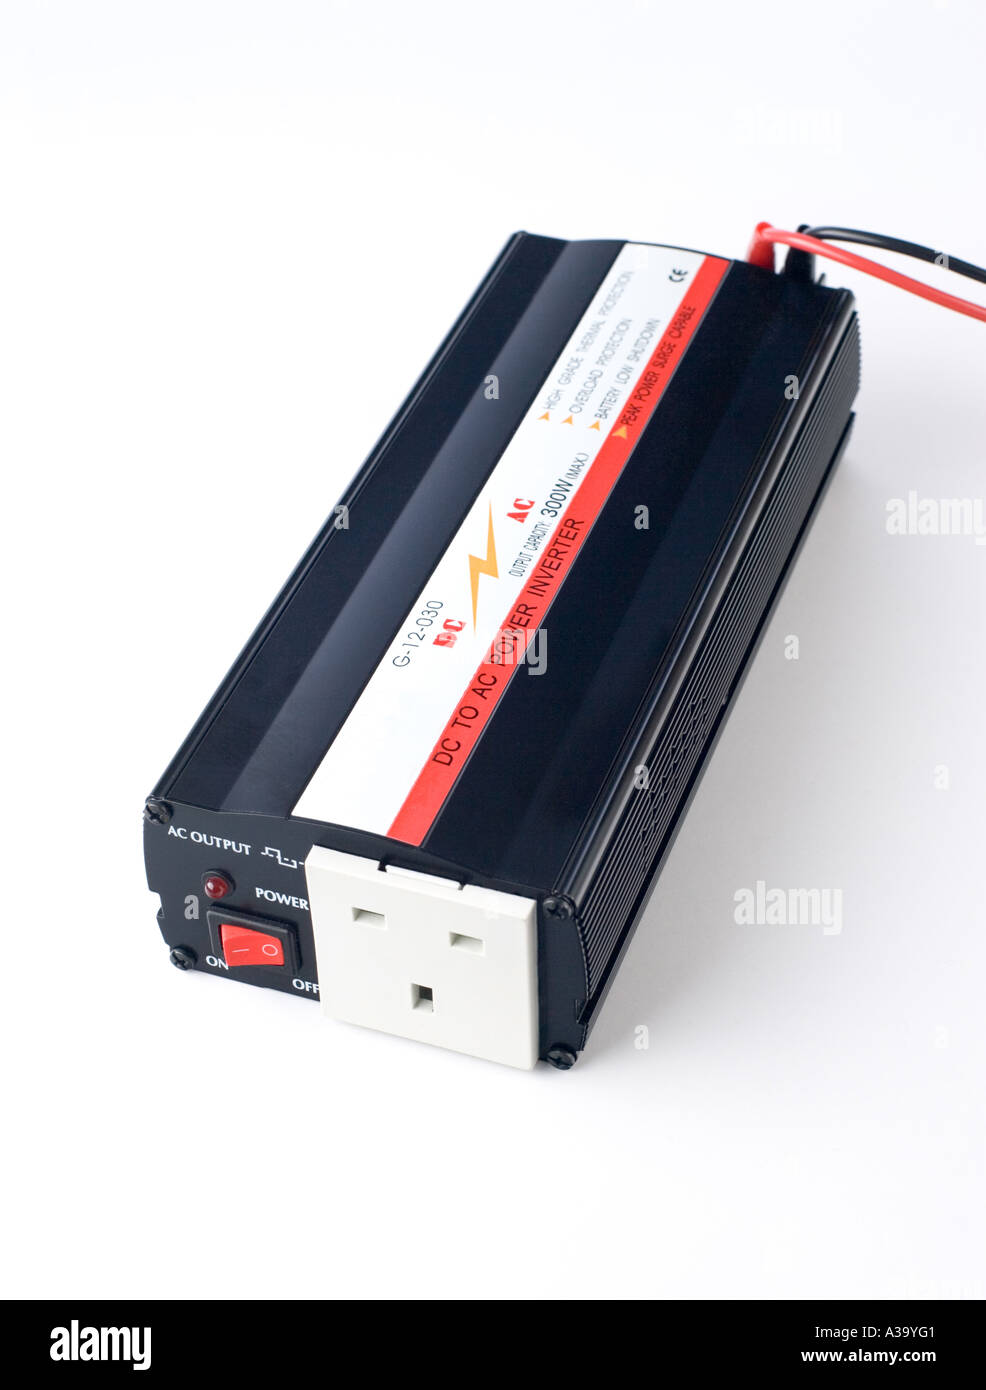 12 Volt Stock Photos Images Alamy Dc To Ac Power Inverter Invertor Powered By A Lead Acid Battery Giving 240 Volts Output